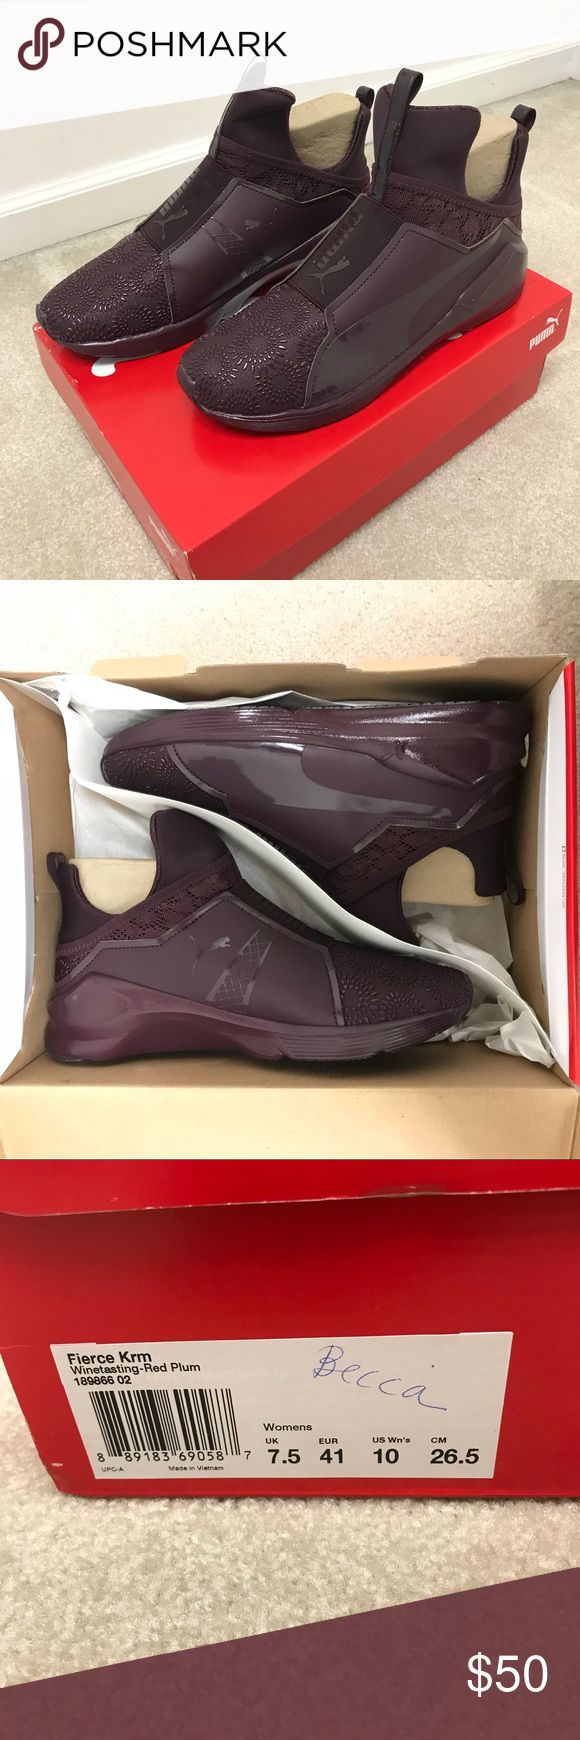 NWB NEVER WORN - PUMA FIERCE KRM Brand new Puma Fierce KRM shoes. Women's size 10. Color is Winetasting/Red Plum. Cross training shoe, but can easily be worn as a casual shoe as well. NO TRADES PLEASE Puma Shoes Sneakers